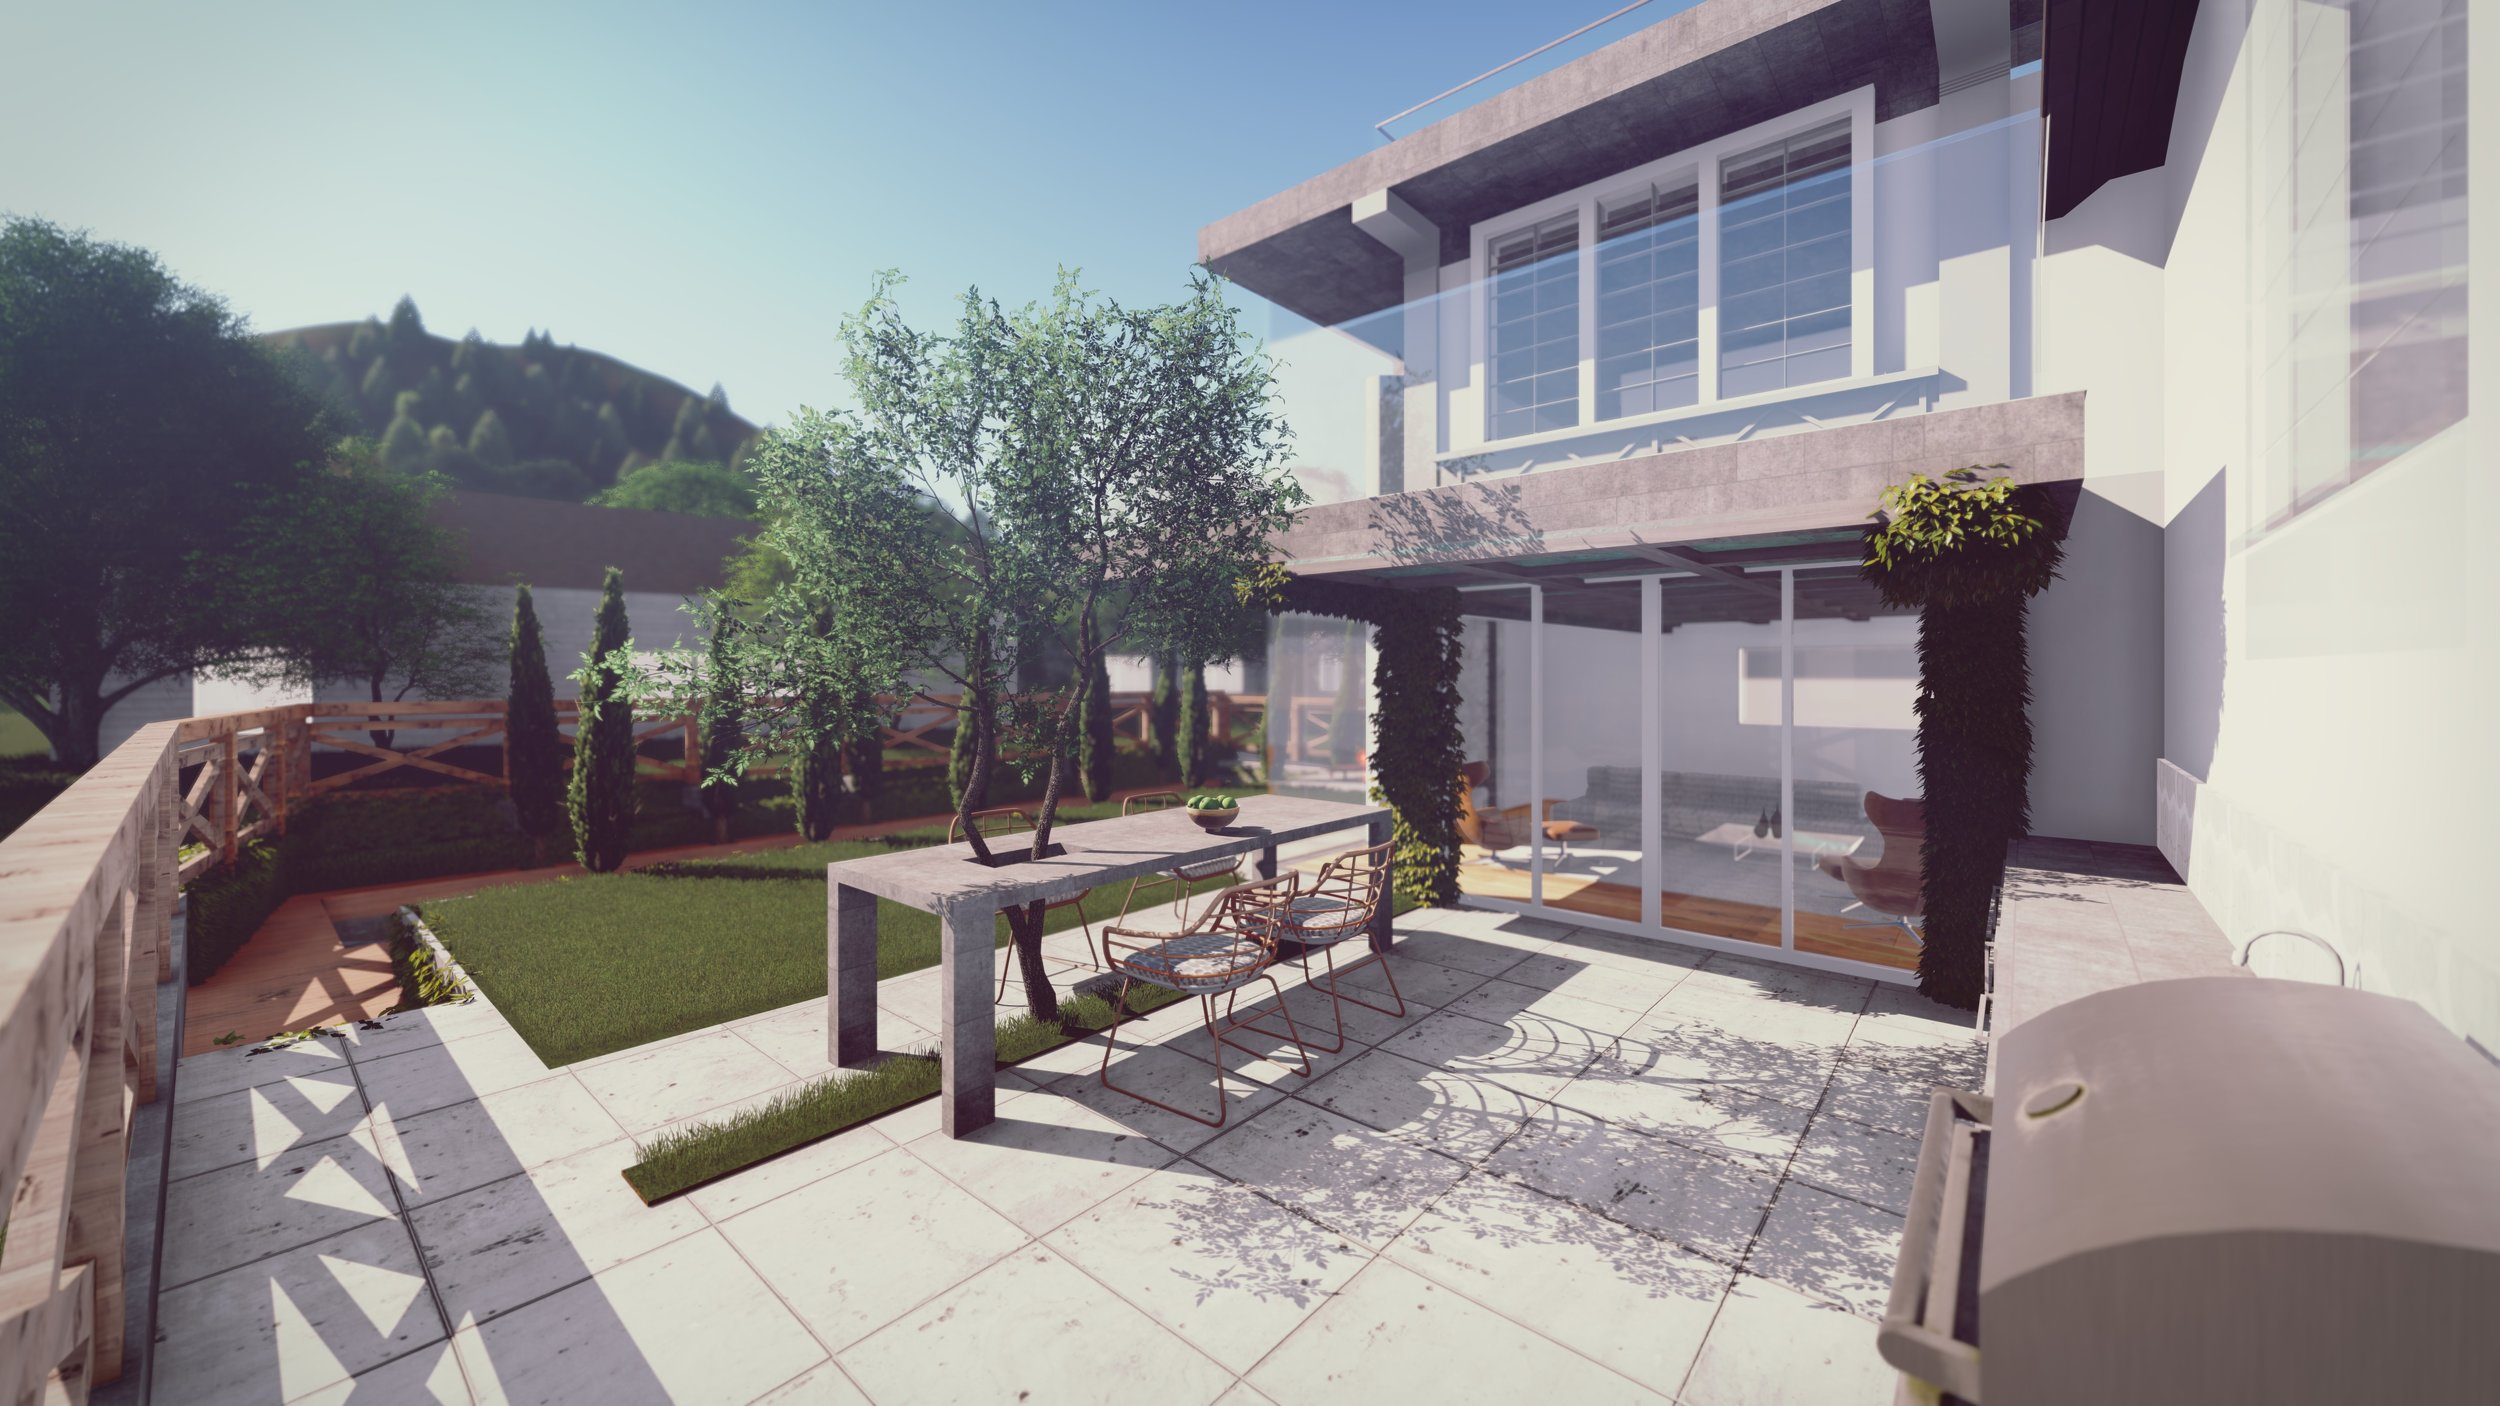 1351 Grand Ave - RENDERS - PATIO_081517.jpg